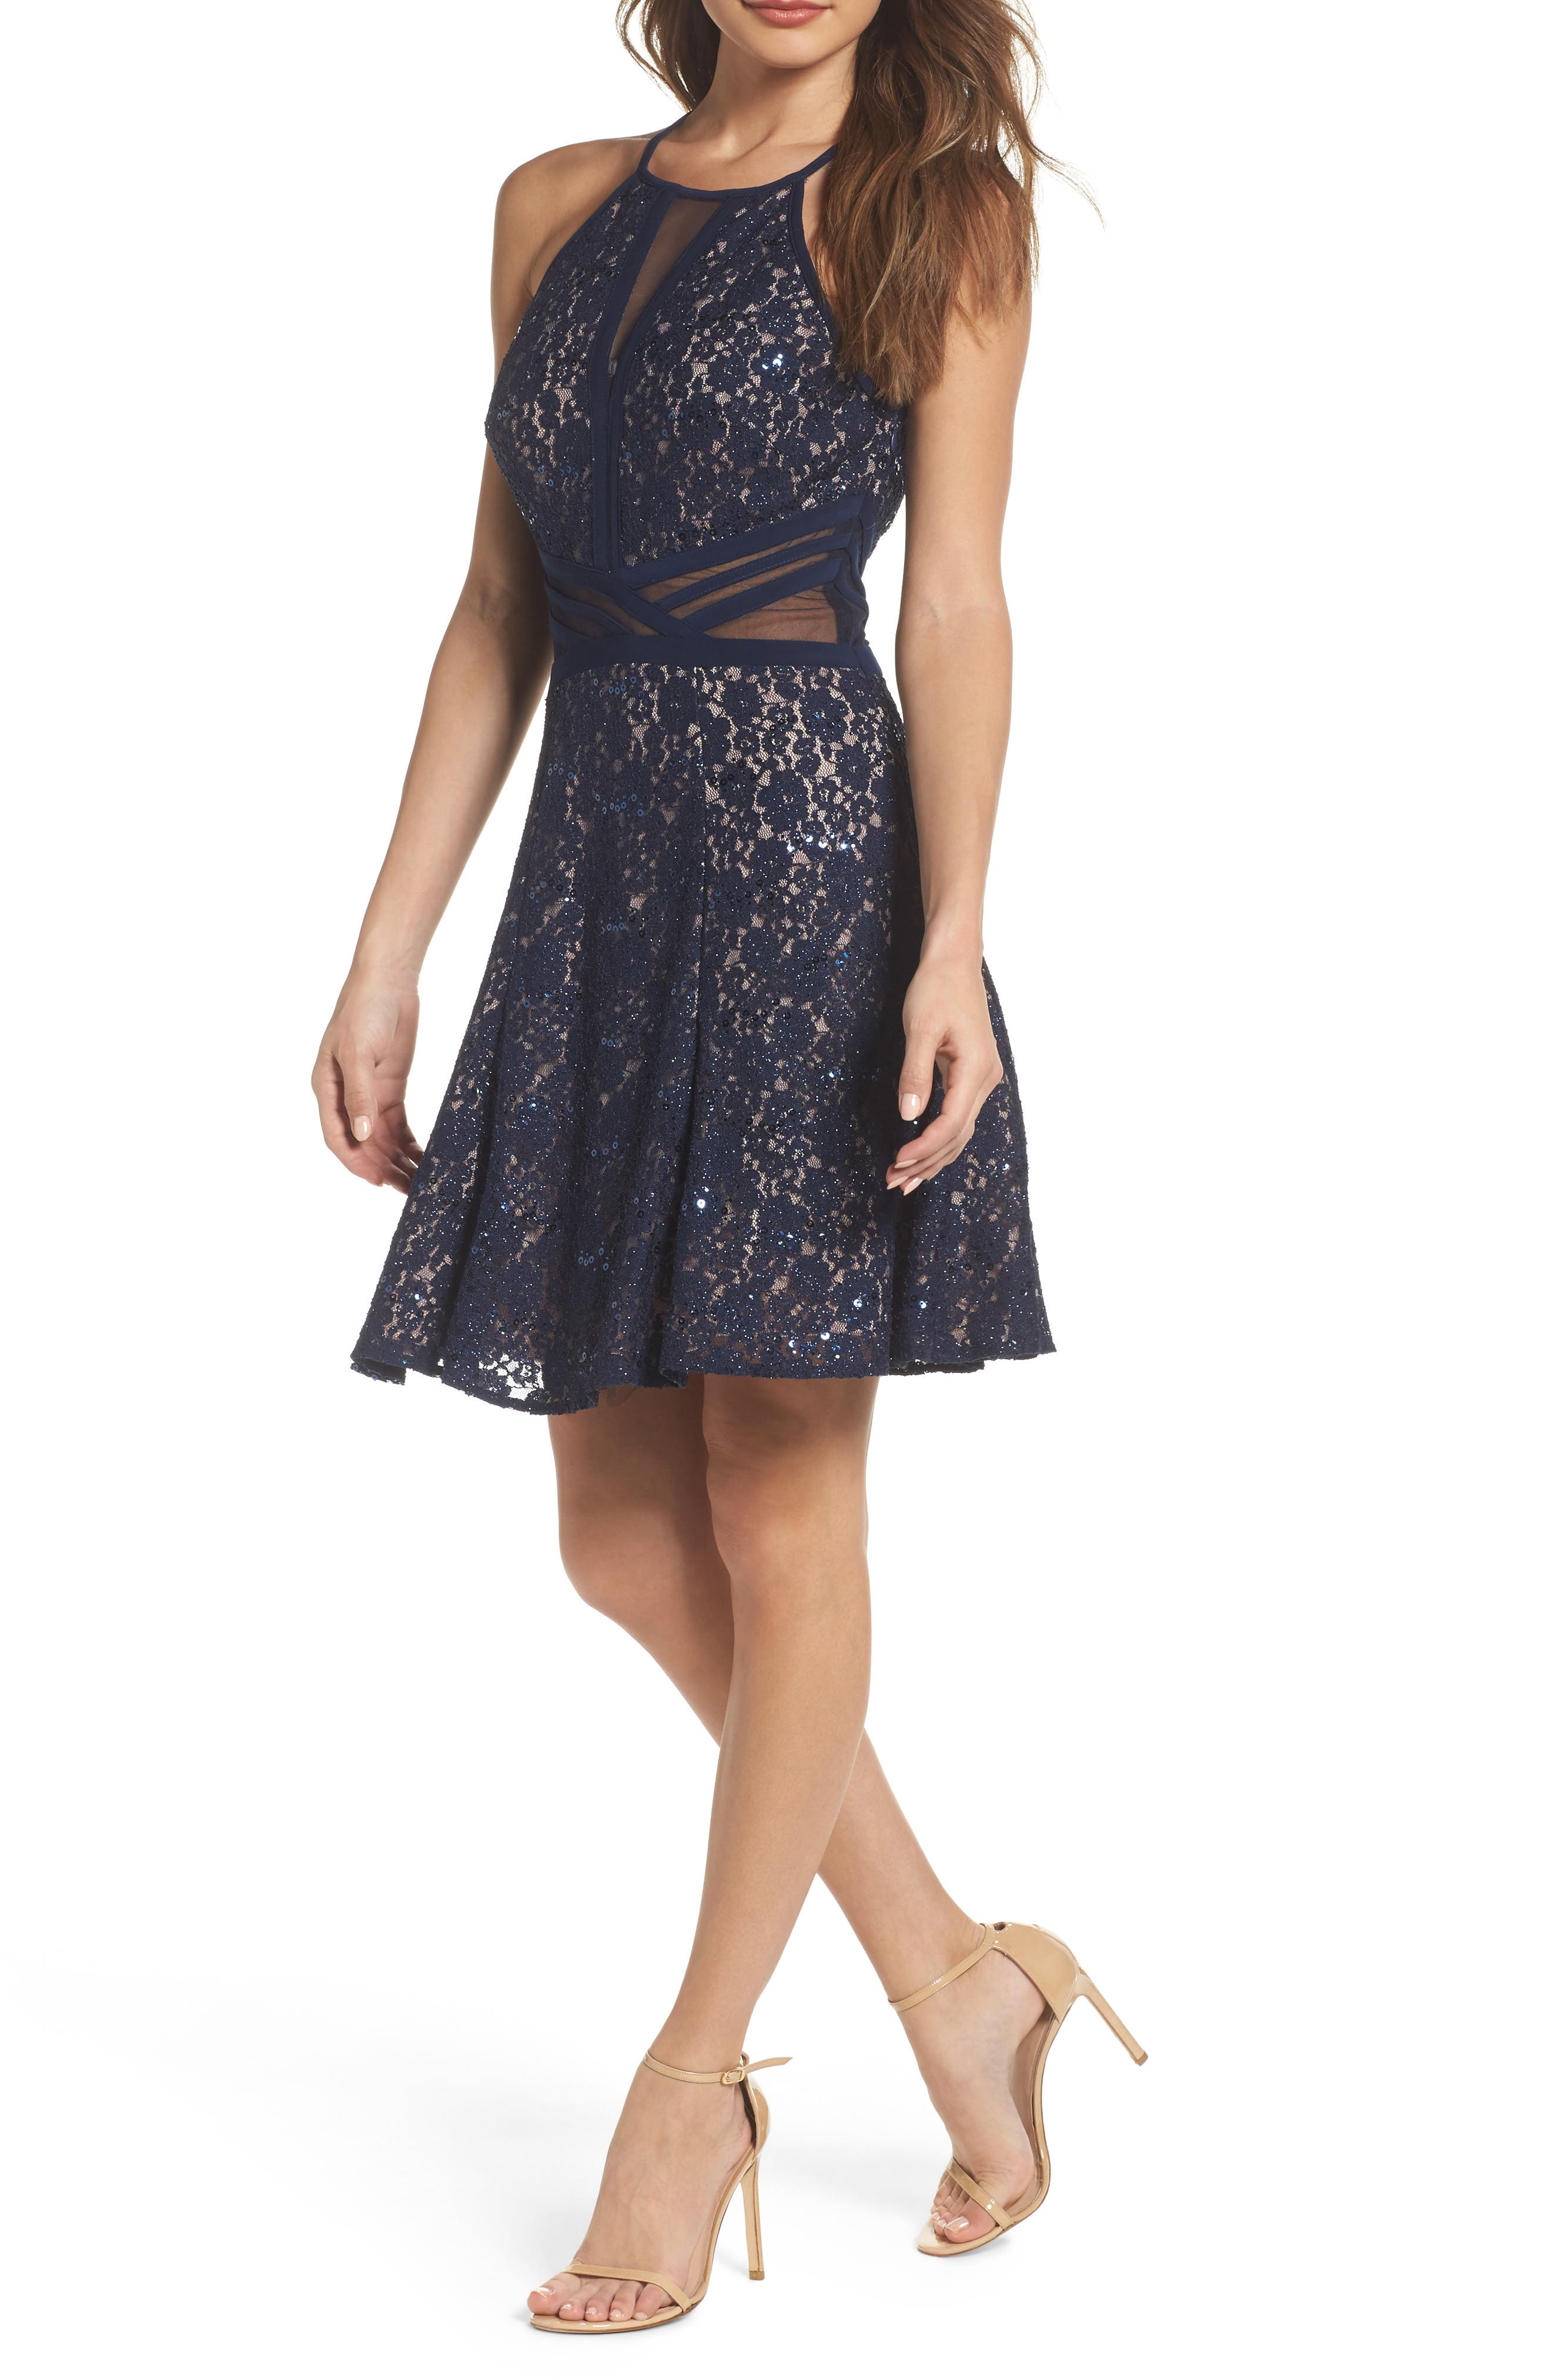 Alternate Image 1 Selected - Morgan & Co. Sheer Inset Lace Fit & Flare Dress